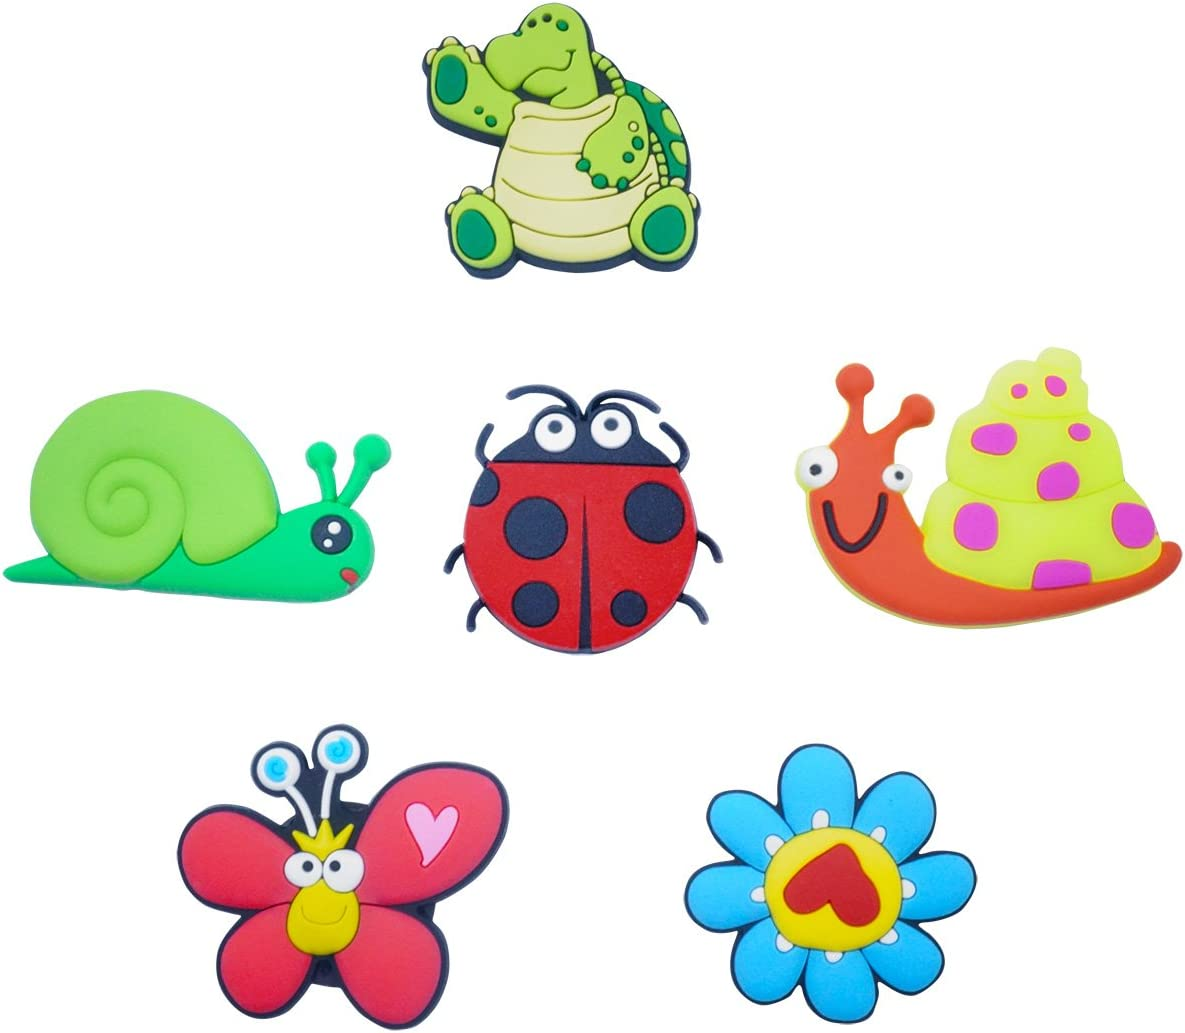 Fridge Magnets Sets Magnetic Toys Cute Insects Cars Vehicles Magnets Educational Magnetic Fun Toys for kids